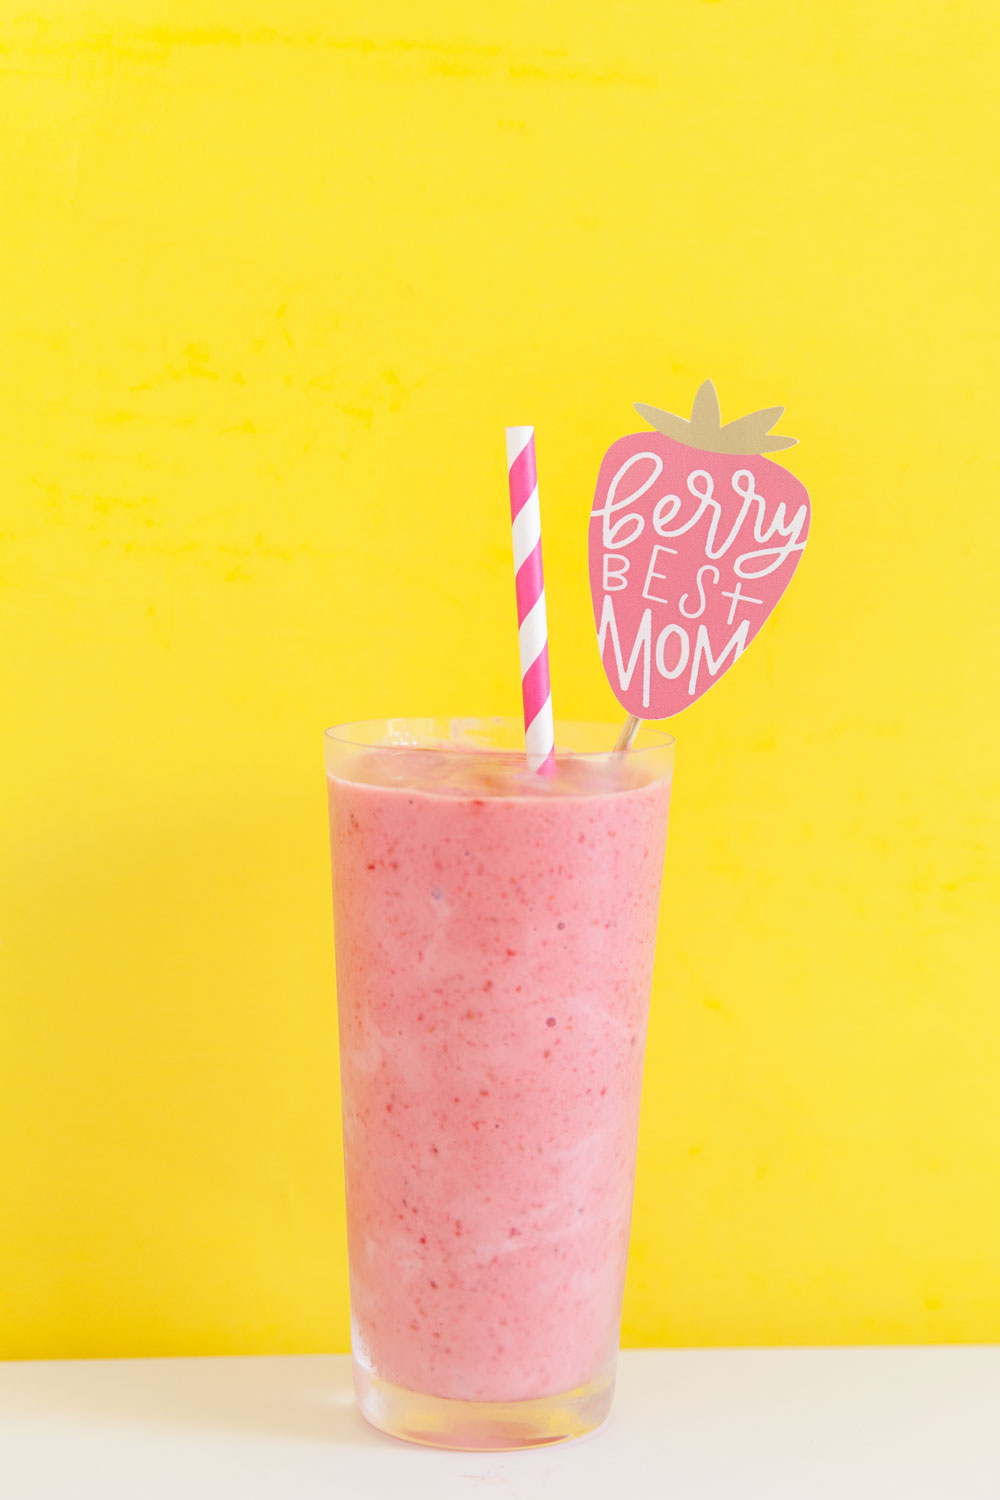 Free-Printables-for-Mothers-Day,-Make-your-smoothies-look-extra-cute